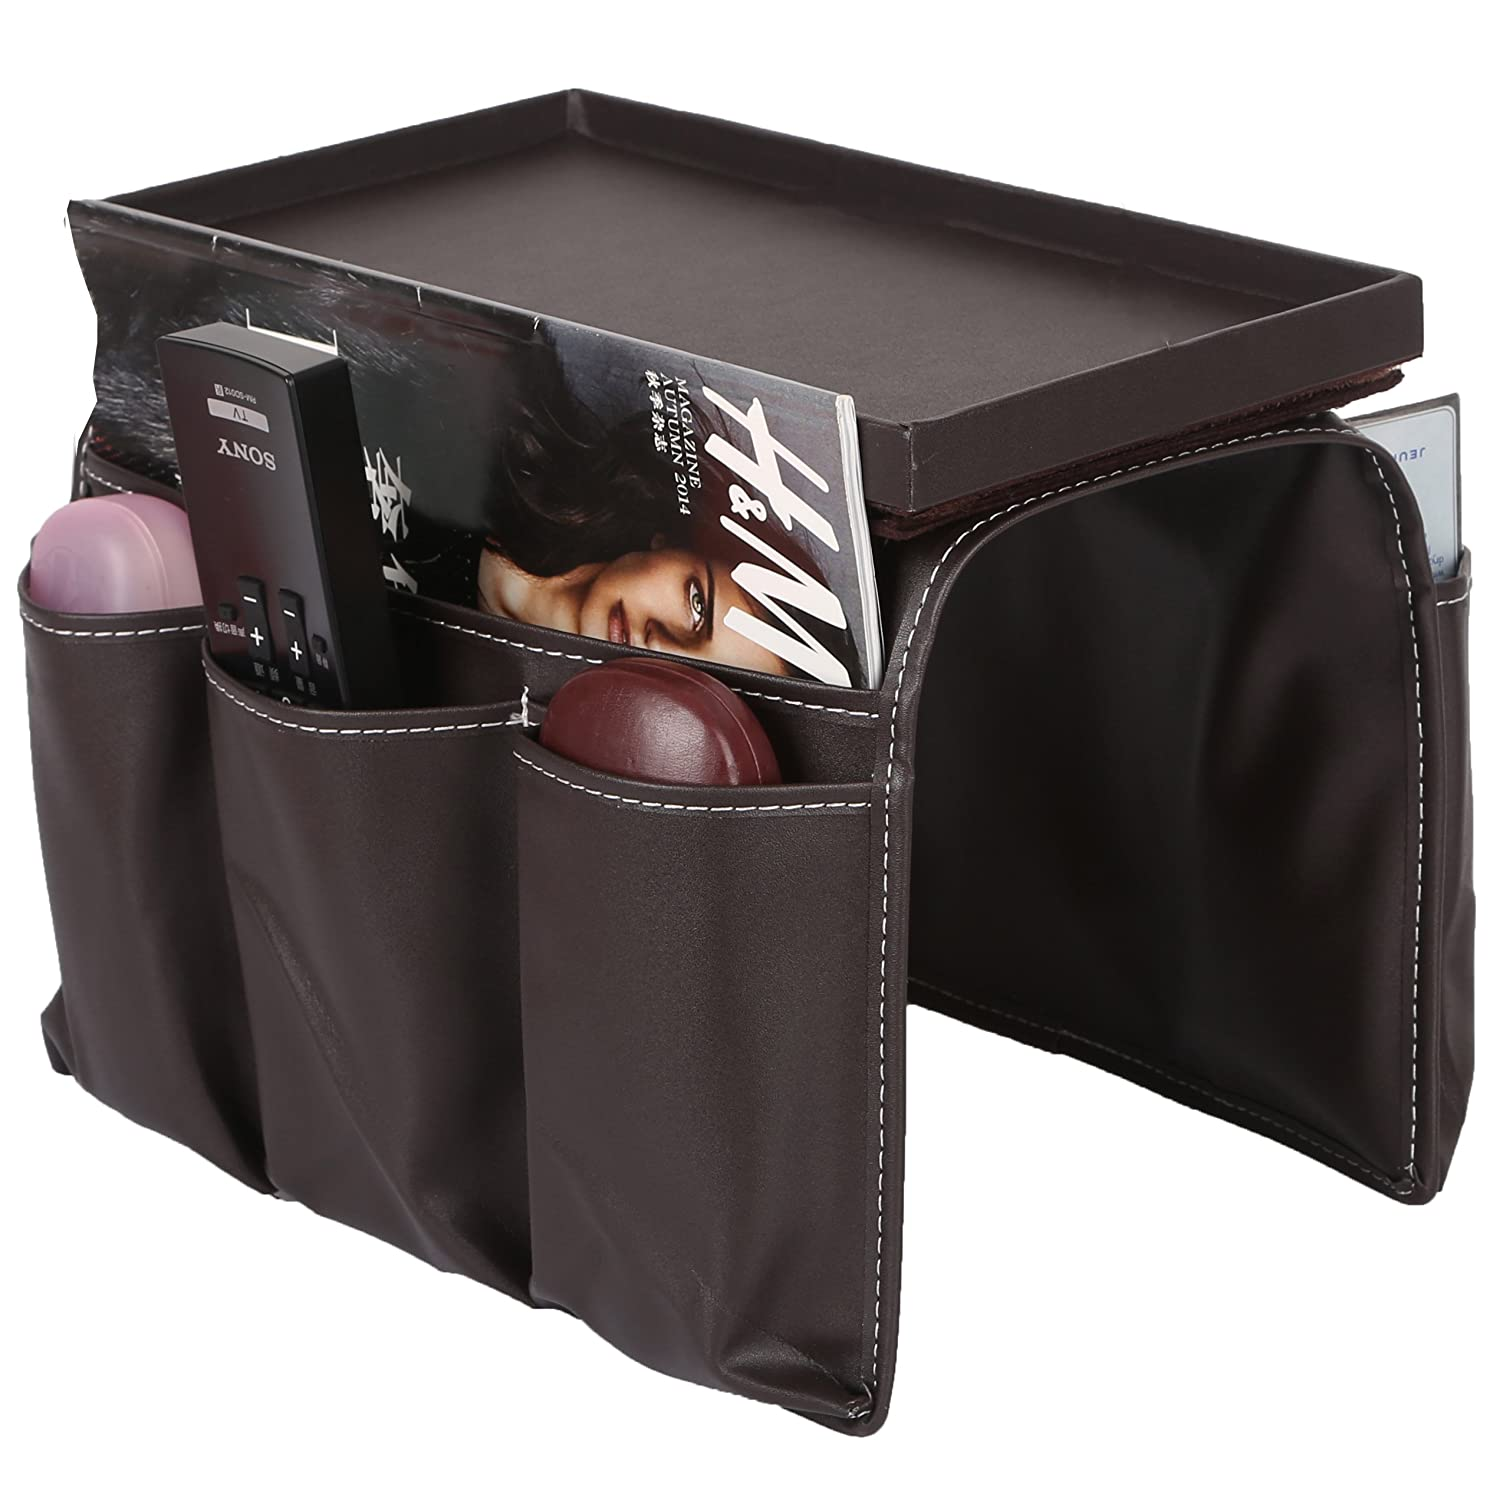 Sofa Couch Remote Control Holder Chair Armrest Caddy Pocket